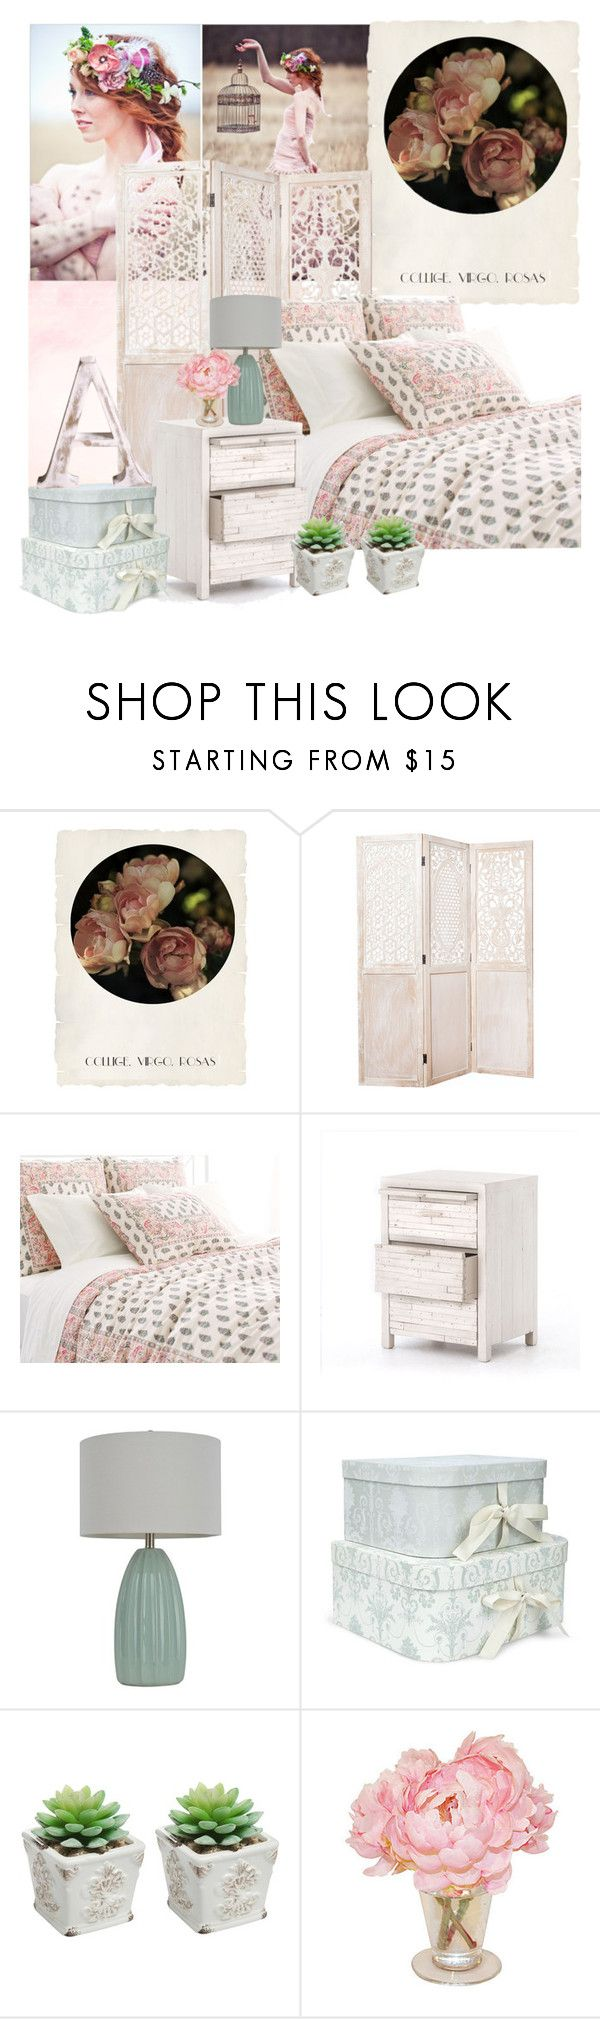 """""""roses"""" by by-jwp ❤ liked on Polyvore featuring interior, interiors, interior design, home, home decor, interior decorating, Shabby Chic, Abigails, Pine Cone Hill and Décor Therapy"""